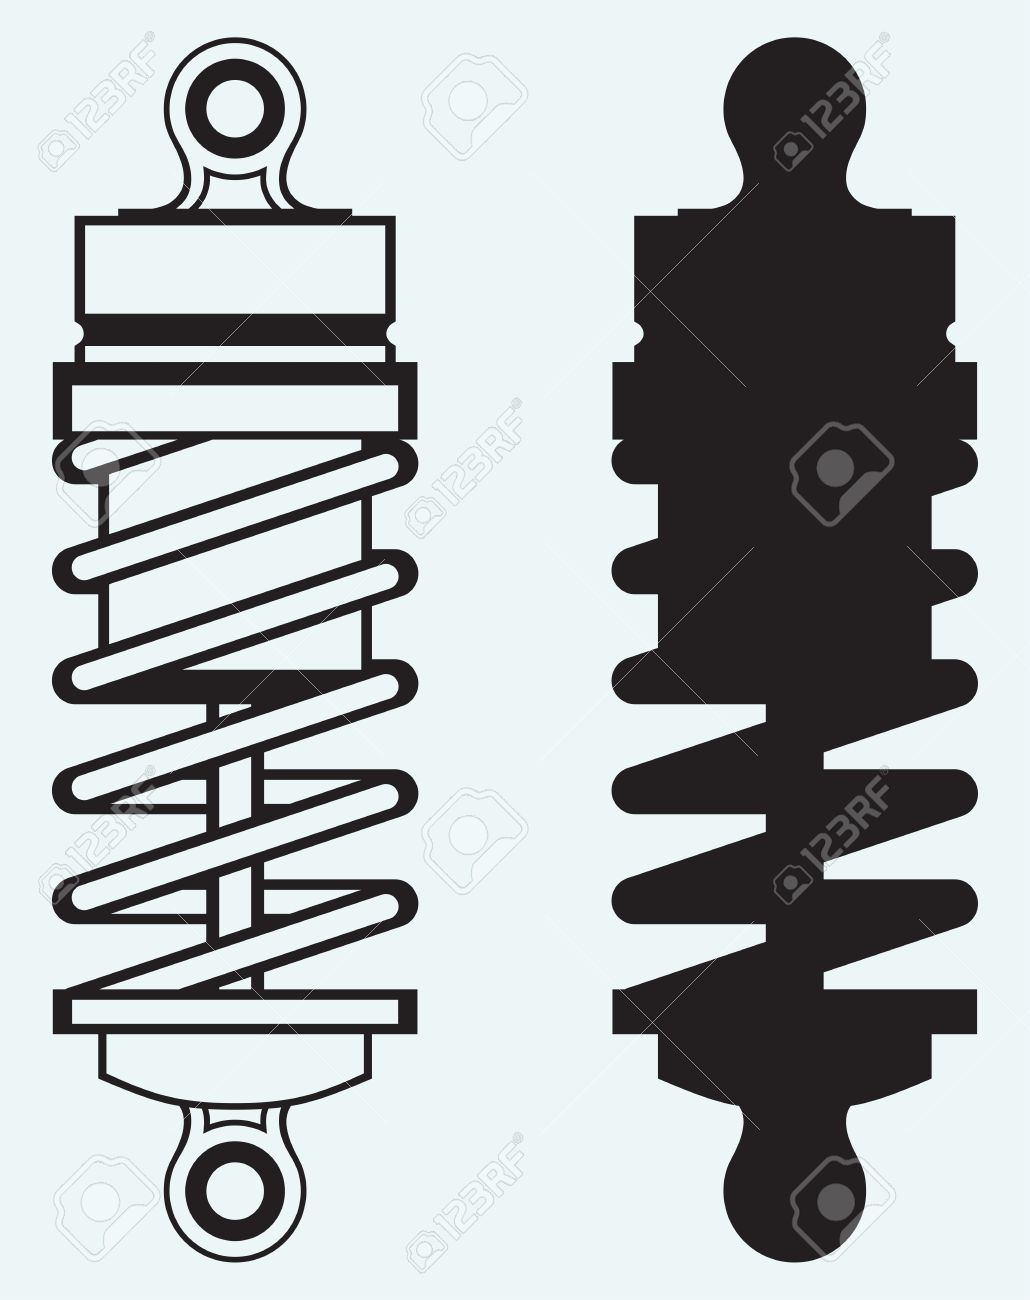 3,519 Suspension Stock Vector Illustration And Royalty Free.